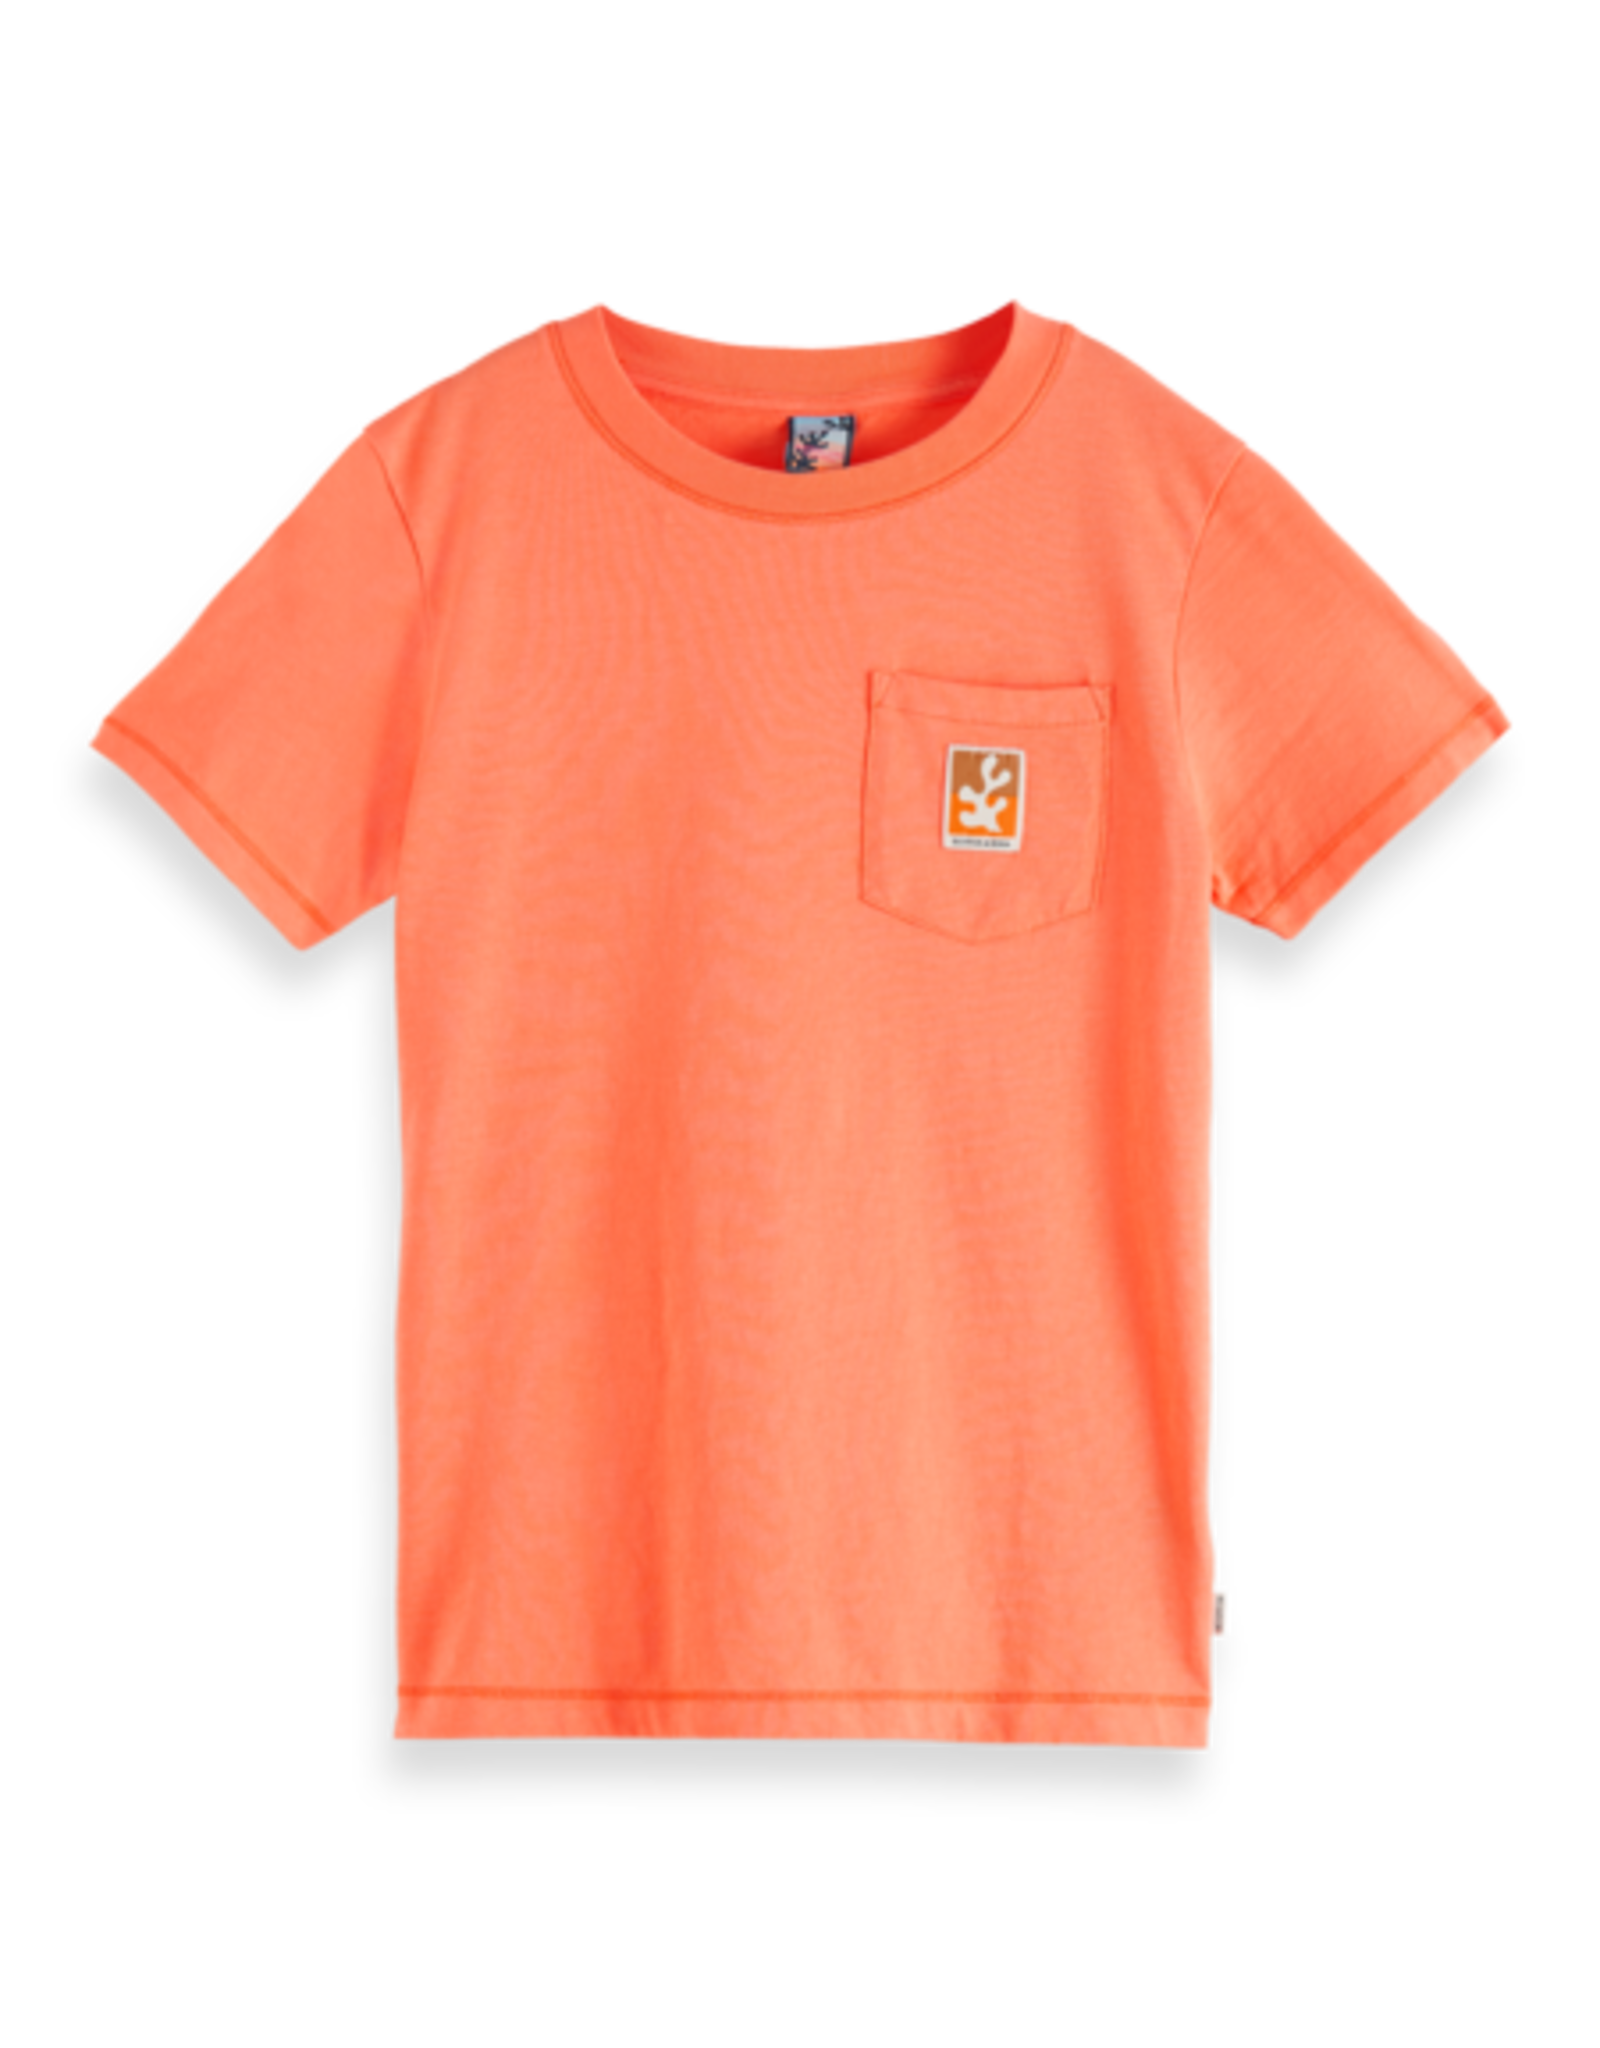 SCOTCH & SODA SCOTCH & SODA Tee col 0856